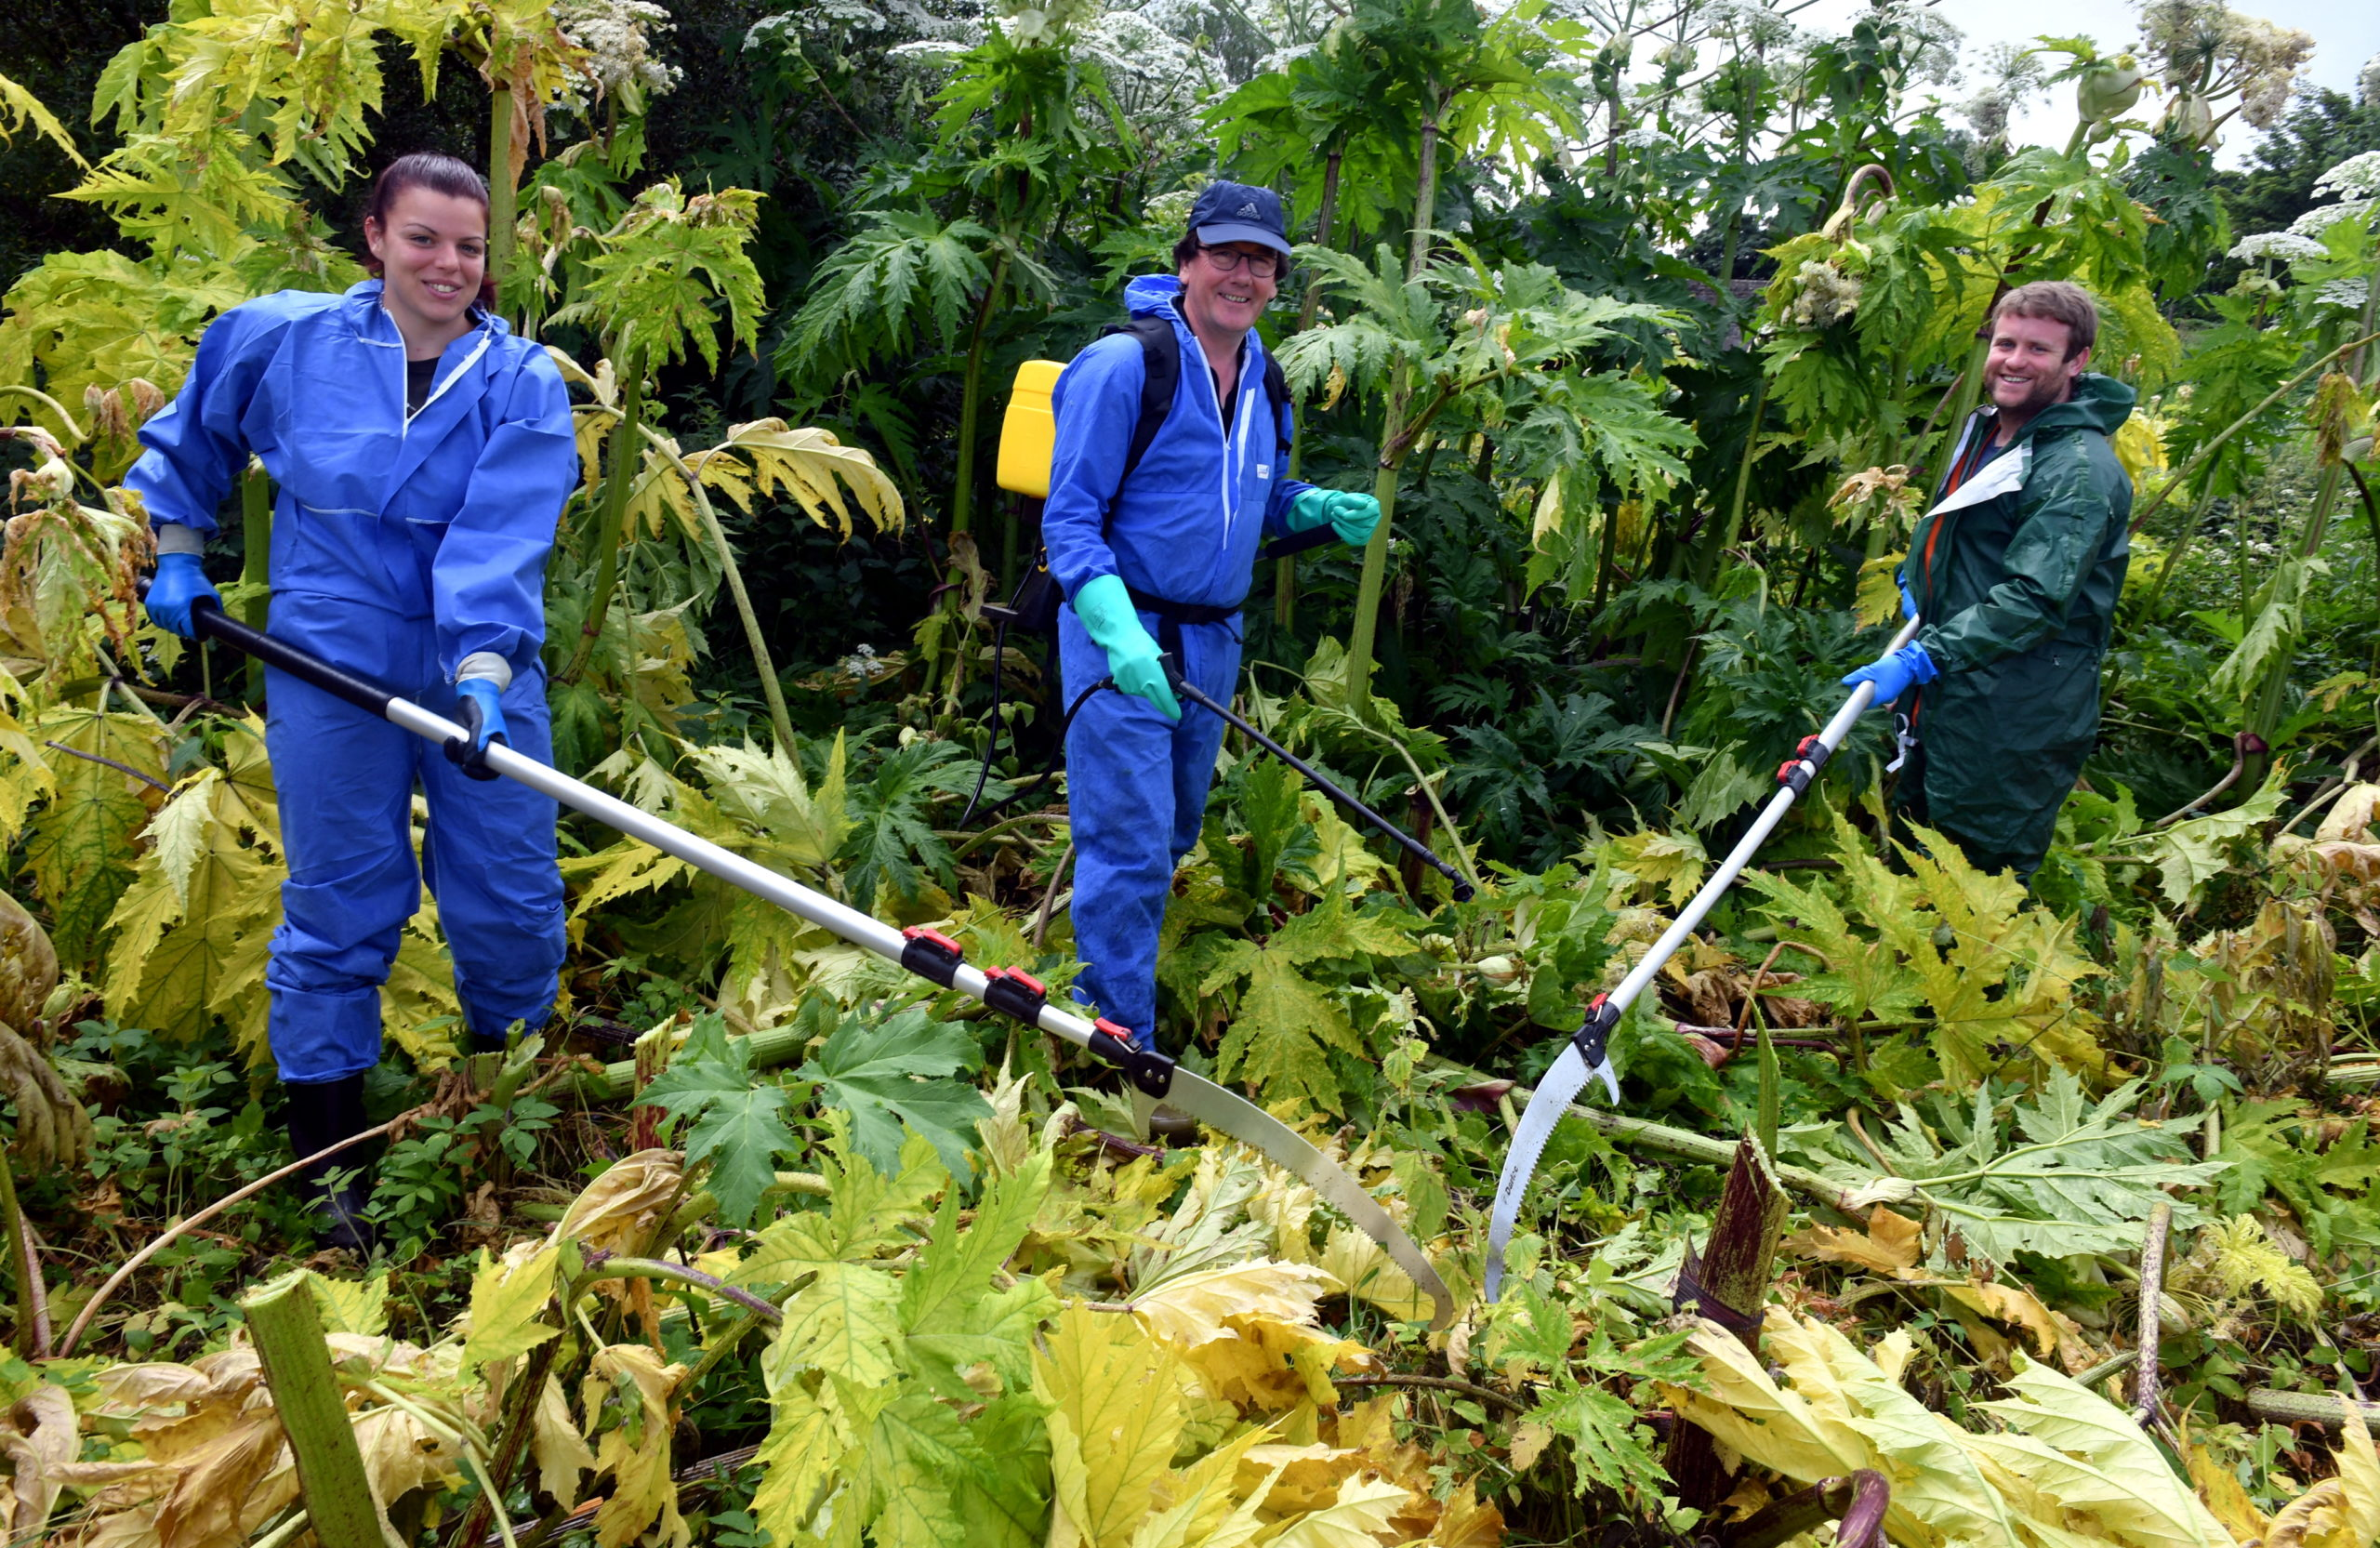 The Findhorn Nairn and Lossie Fisheries Trust is battling overgrown hogweed after its efforts to control the plant were hit by the coronavirus lockdown. Pictured: Mirella Toth, seasons operative officer, Bob Laughton, director of Findhorn Nairn and Lossie Fisheries Trust and James Symonds, project officer. Picture by Chris Sumner.